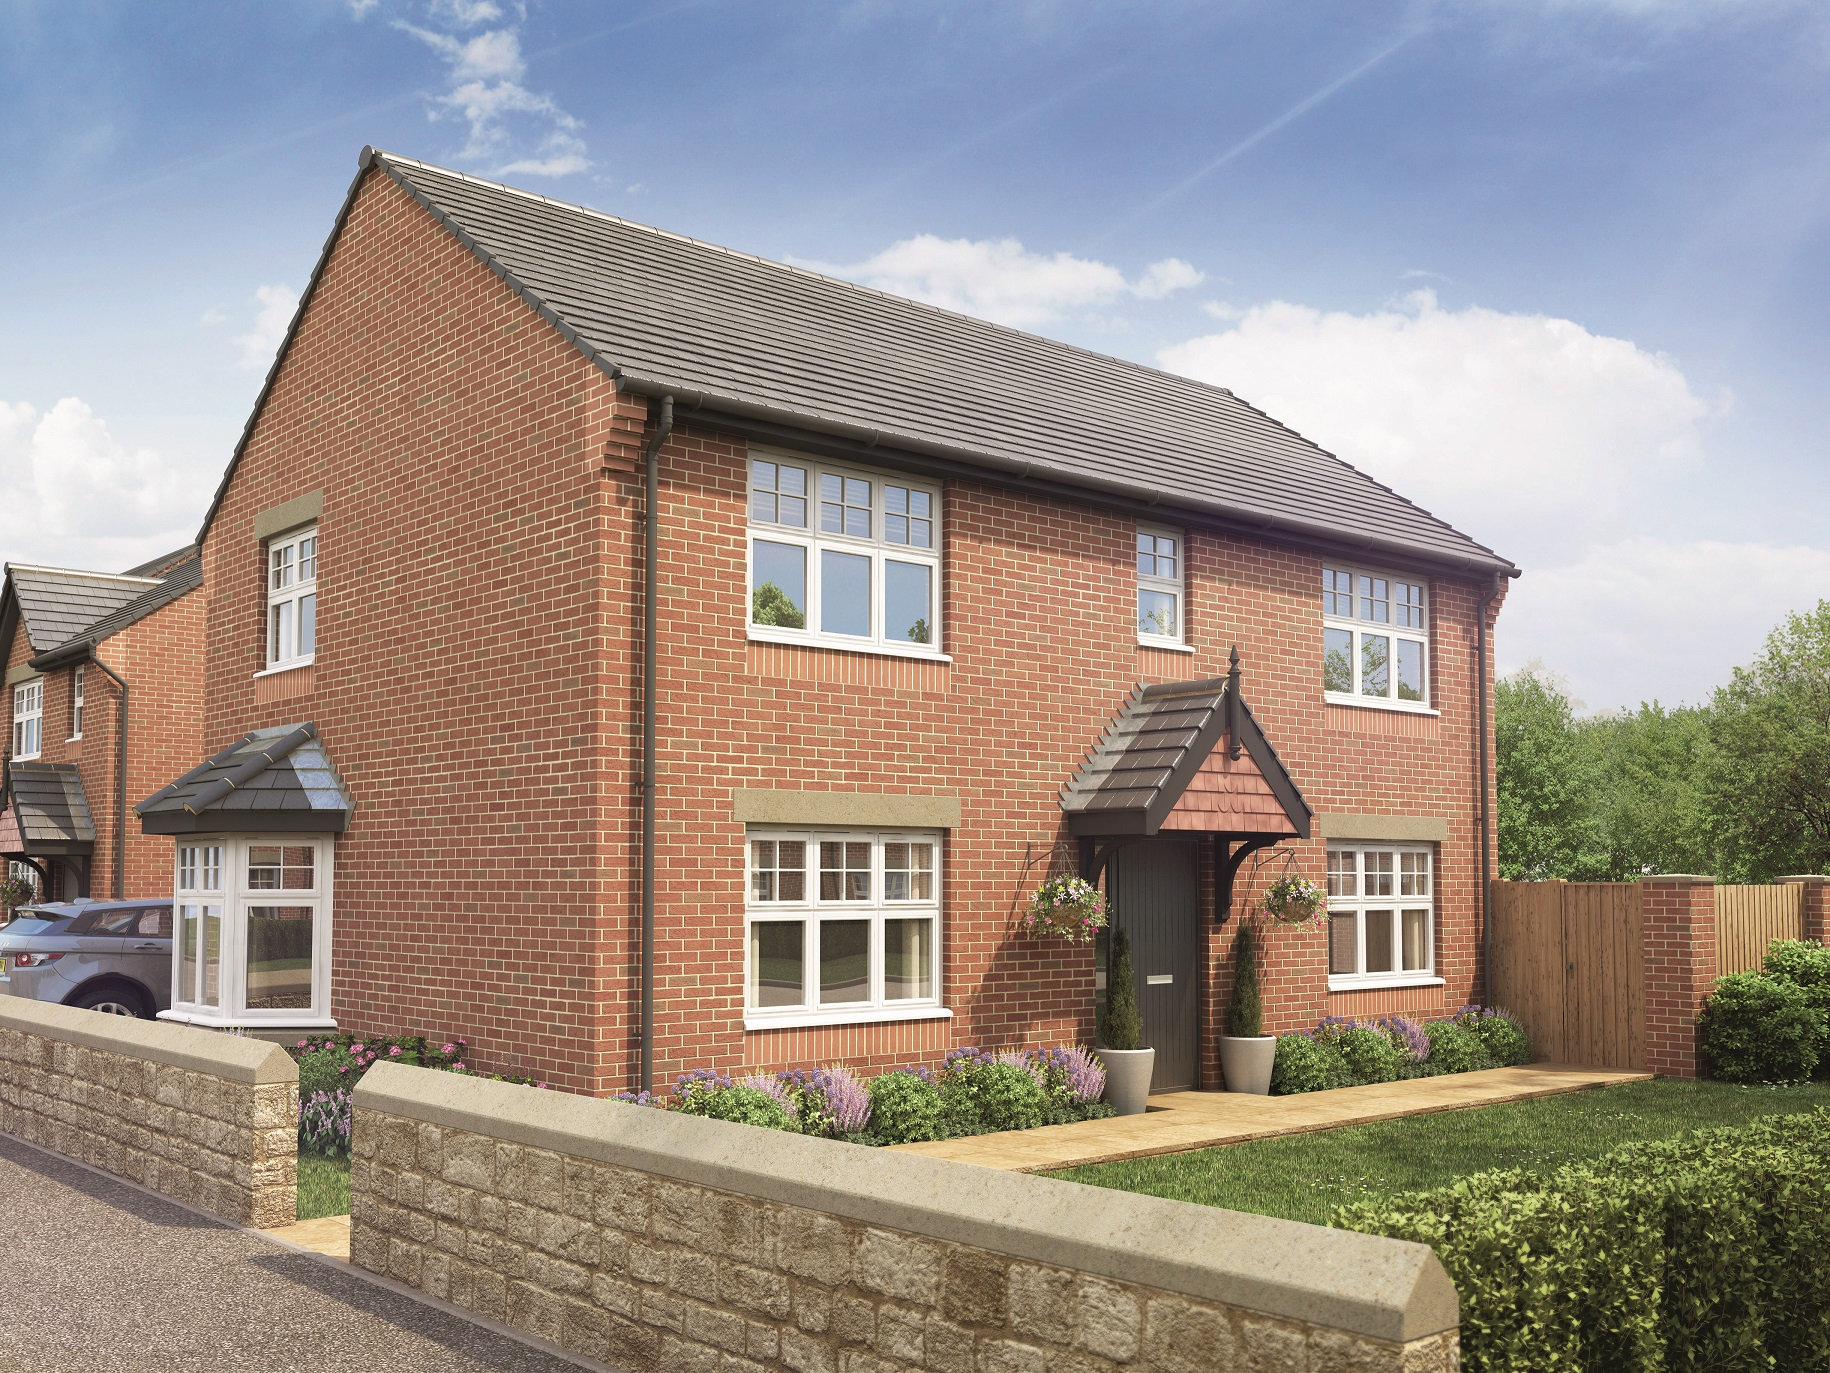 New homes for sale in oldham 28 images houses for sale for Furniture 365 oldham